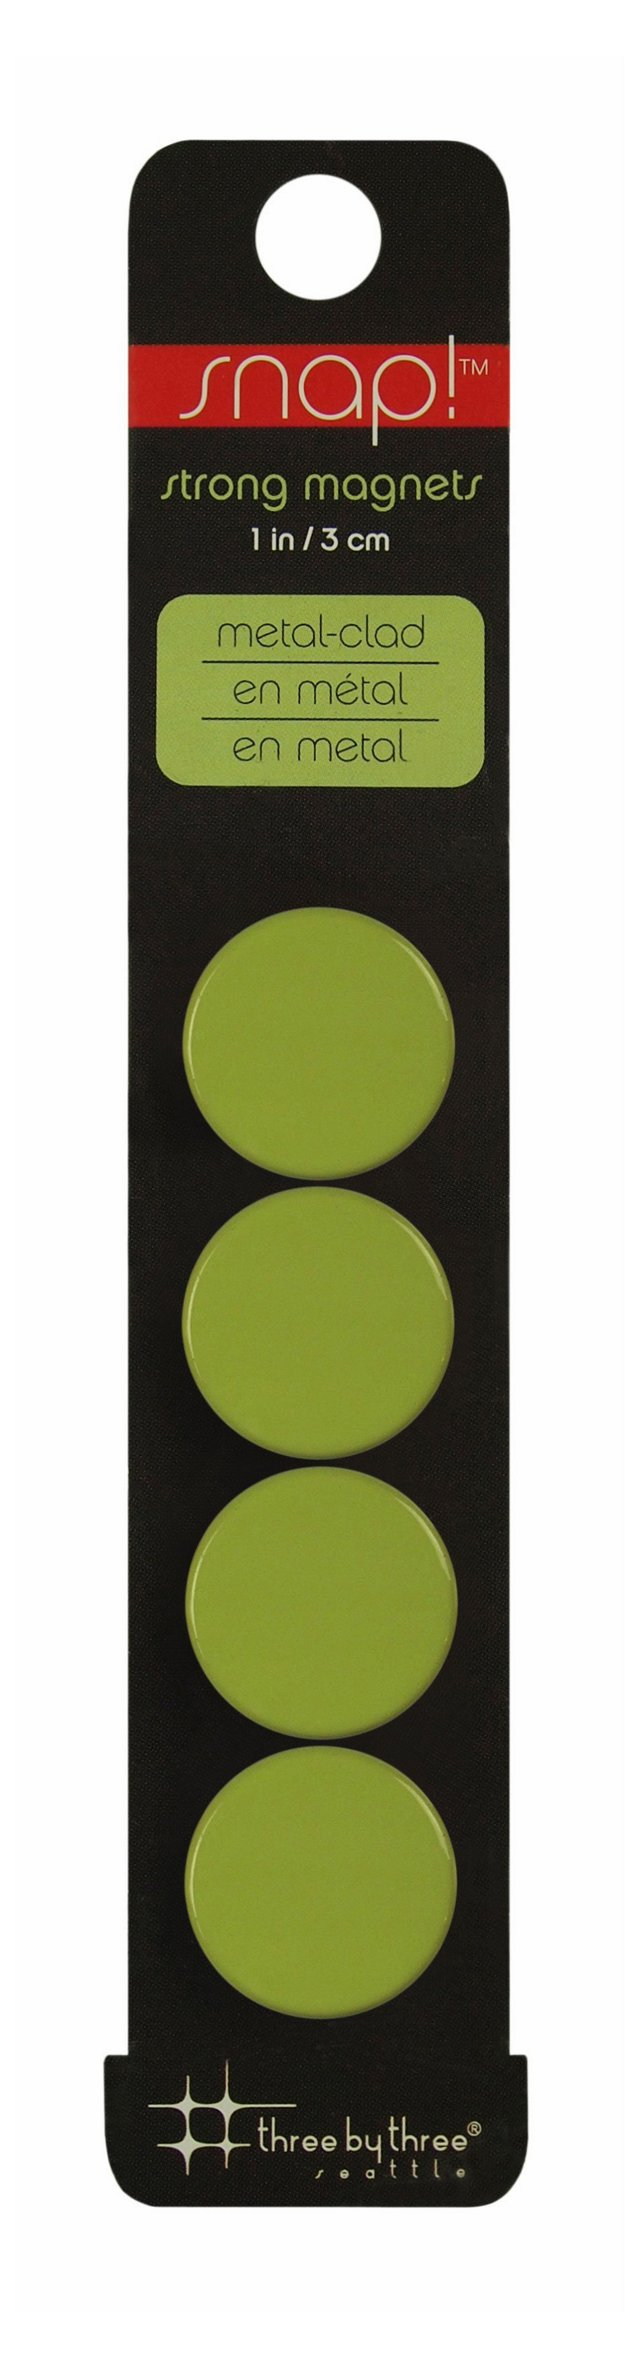 S/16 Snap! Strong Magnets, Green